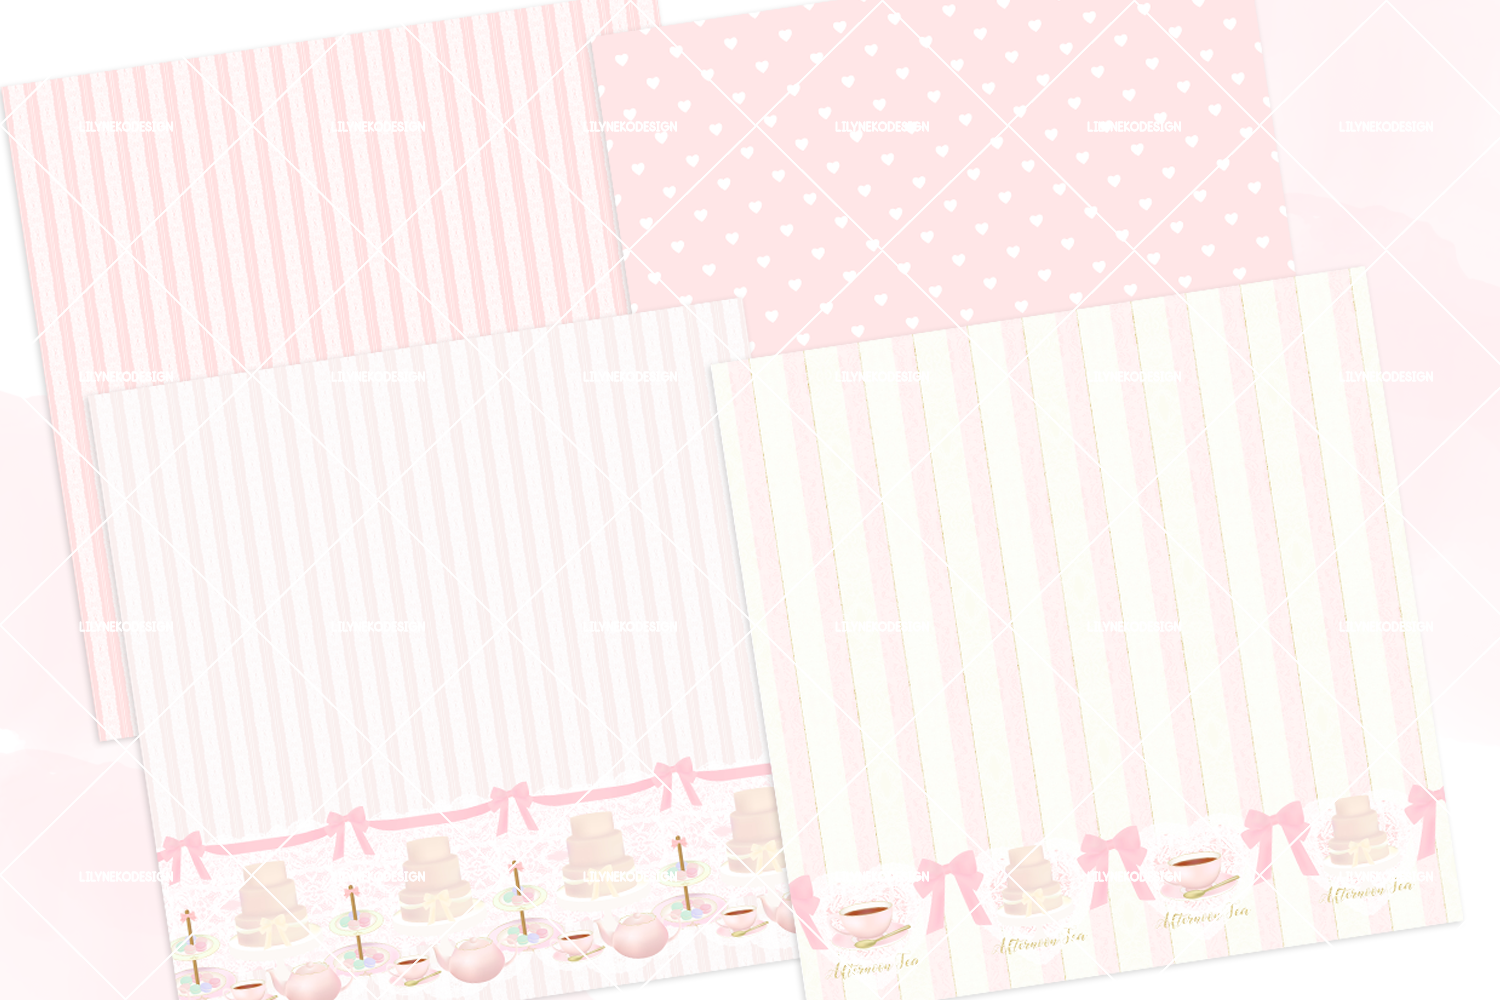 Macaron Afternoon Tea party Pattern Digital Papers example image 2